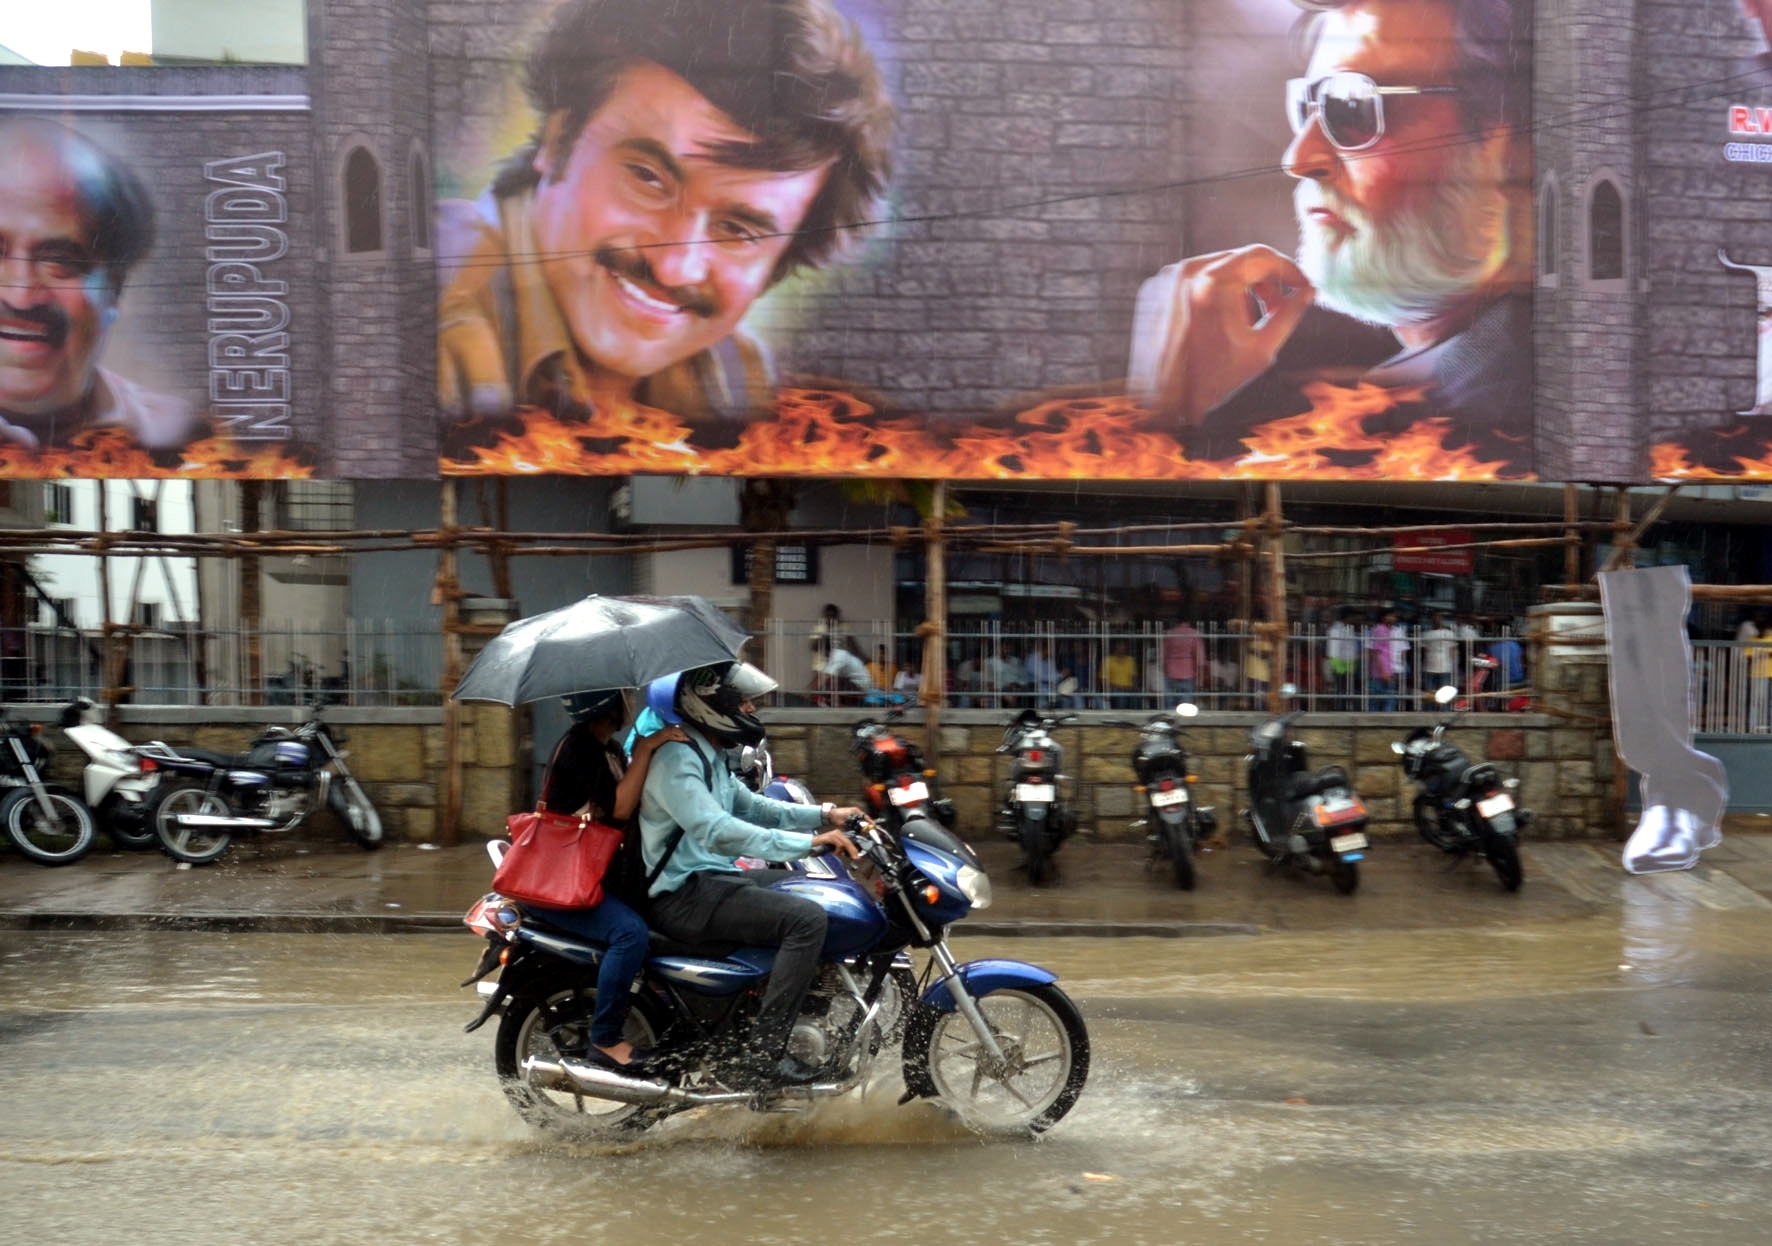 """Bengaluru: Posters of Rajinikanth's upcoming Tamil Film """"Kabali"""" being erected at Urvashi theatre ahead of its release in Bengaluru on July 20, 2016. (Photo: IANS)"""